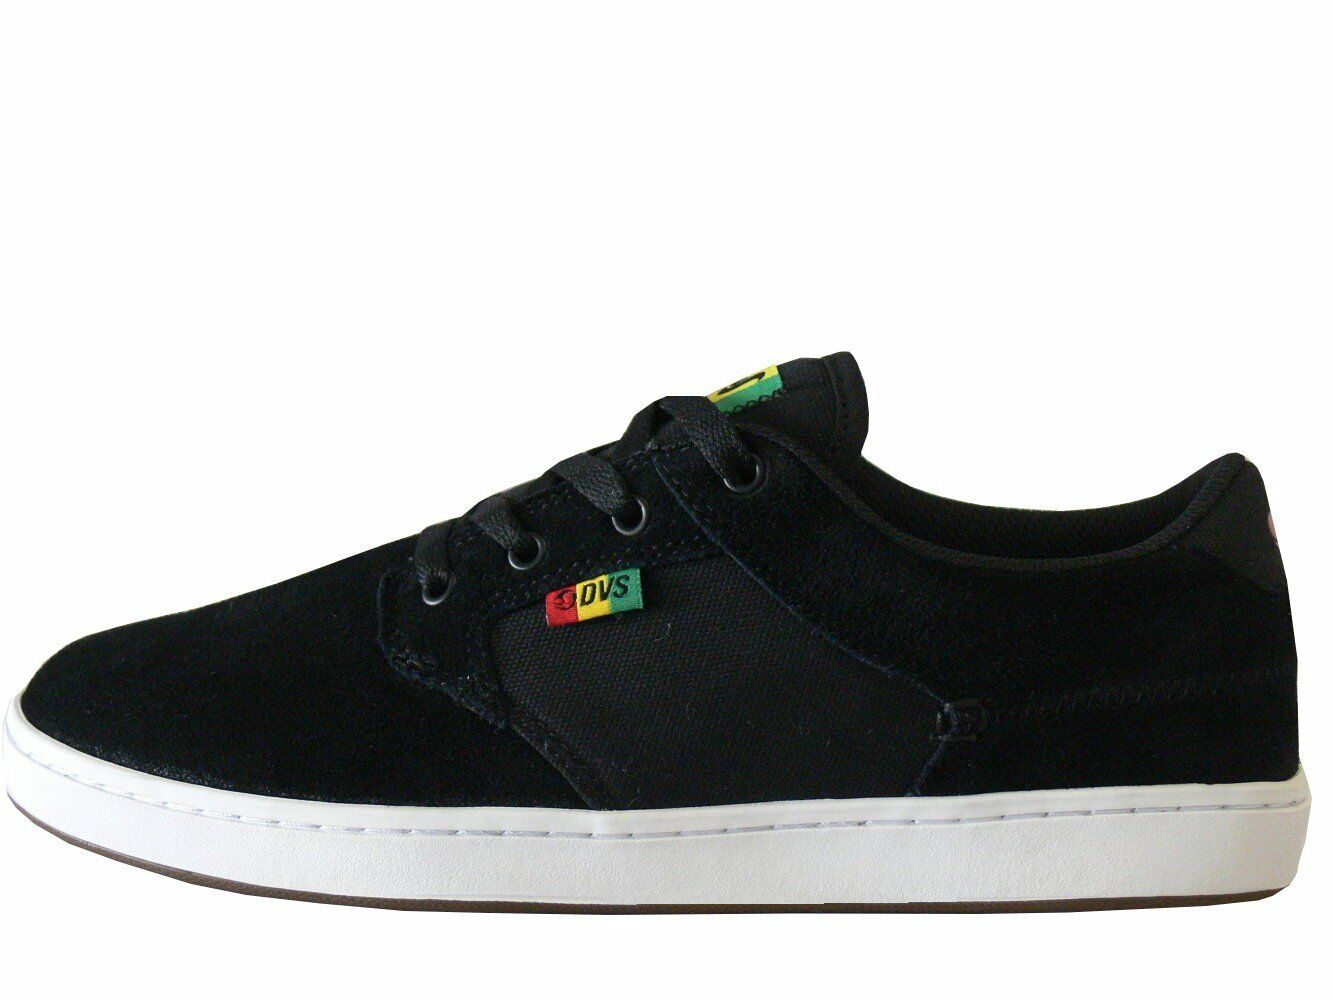 DVS Quentin Black Rasta DVS Chaussures Sneaker skate baskets taille taille taille 42, 45, 46, 47 dc7e38